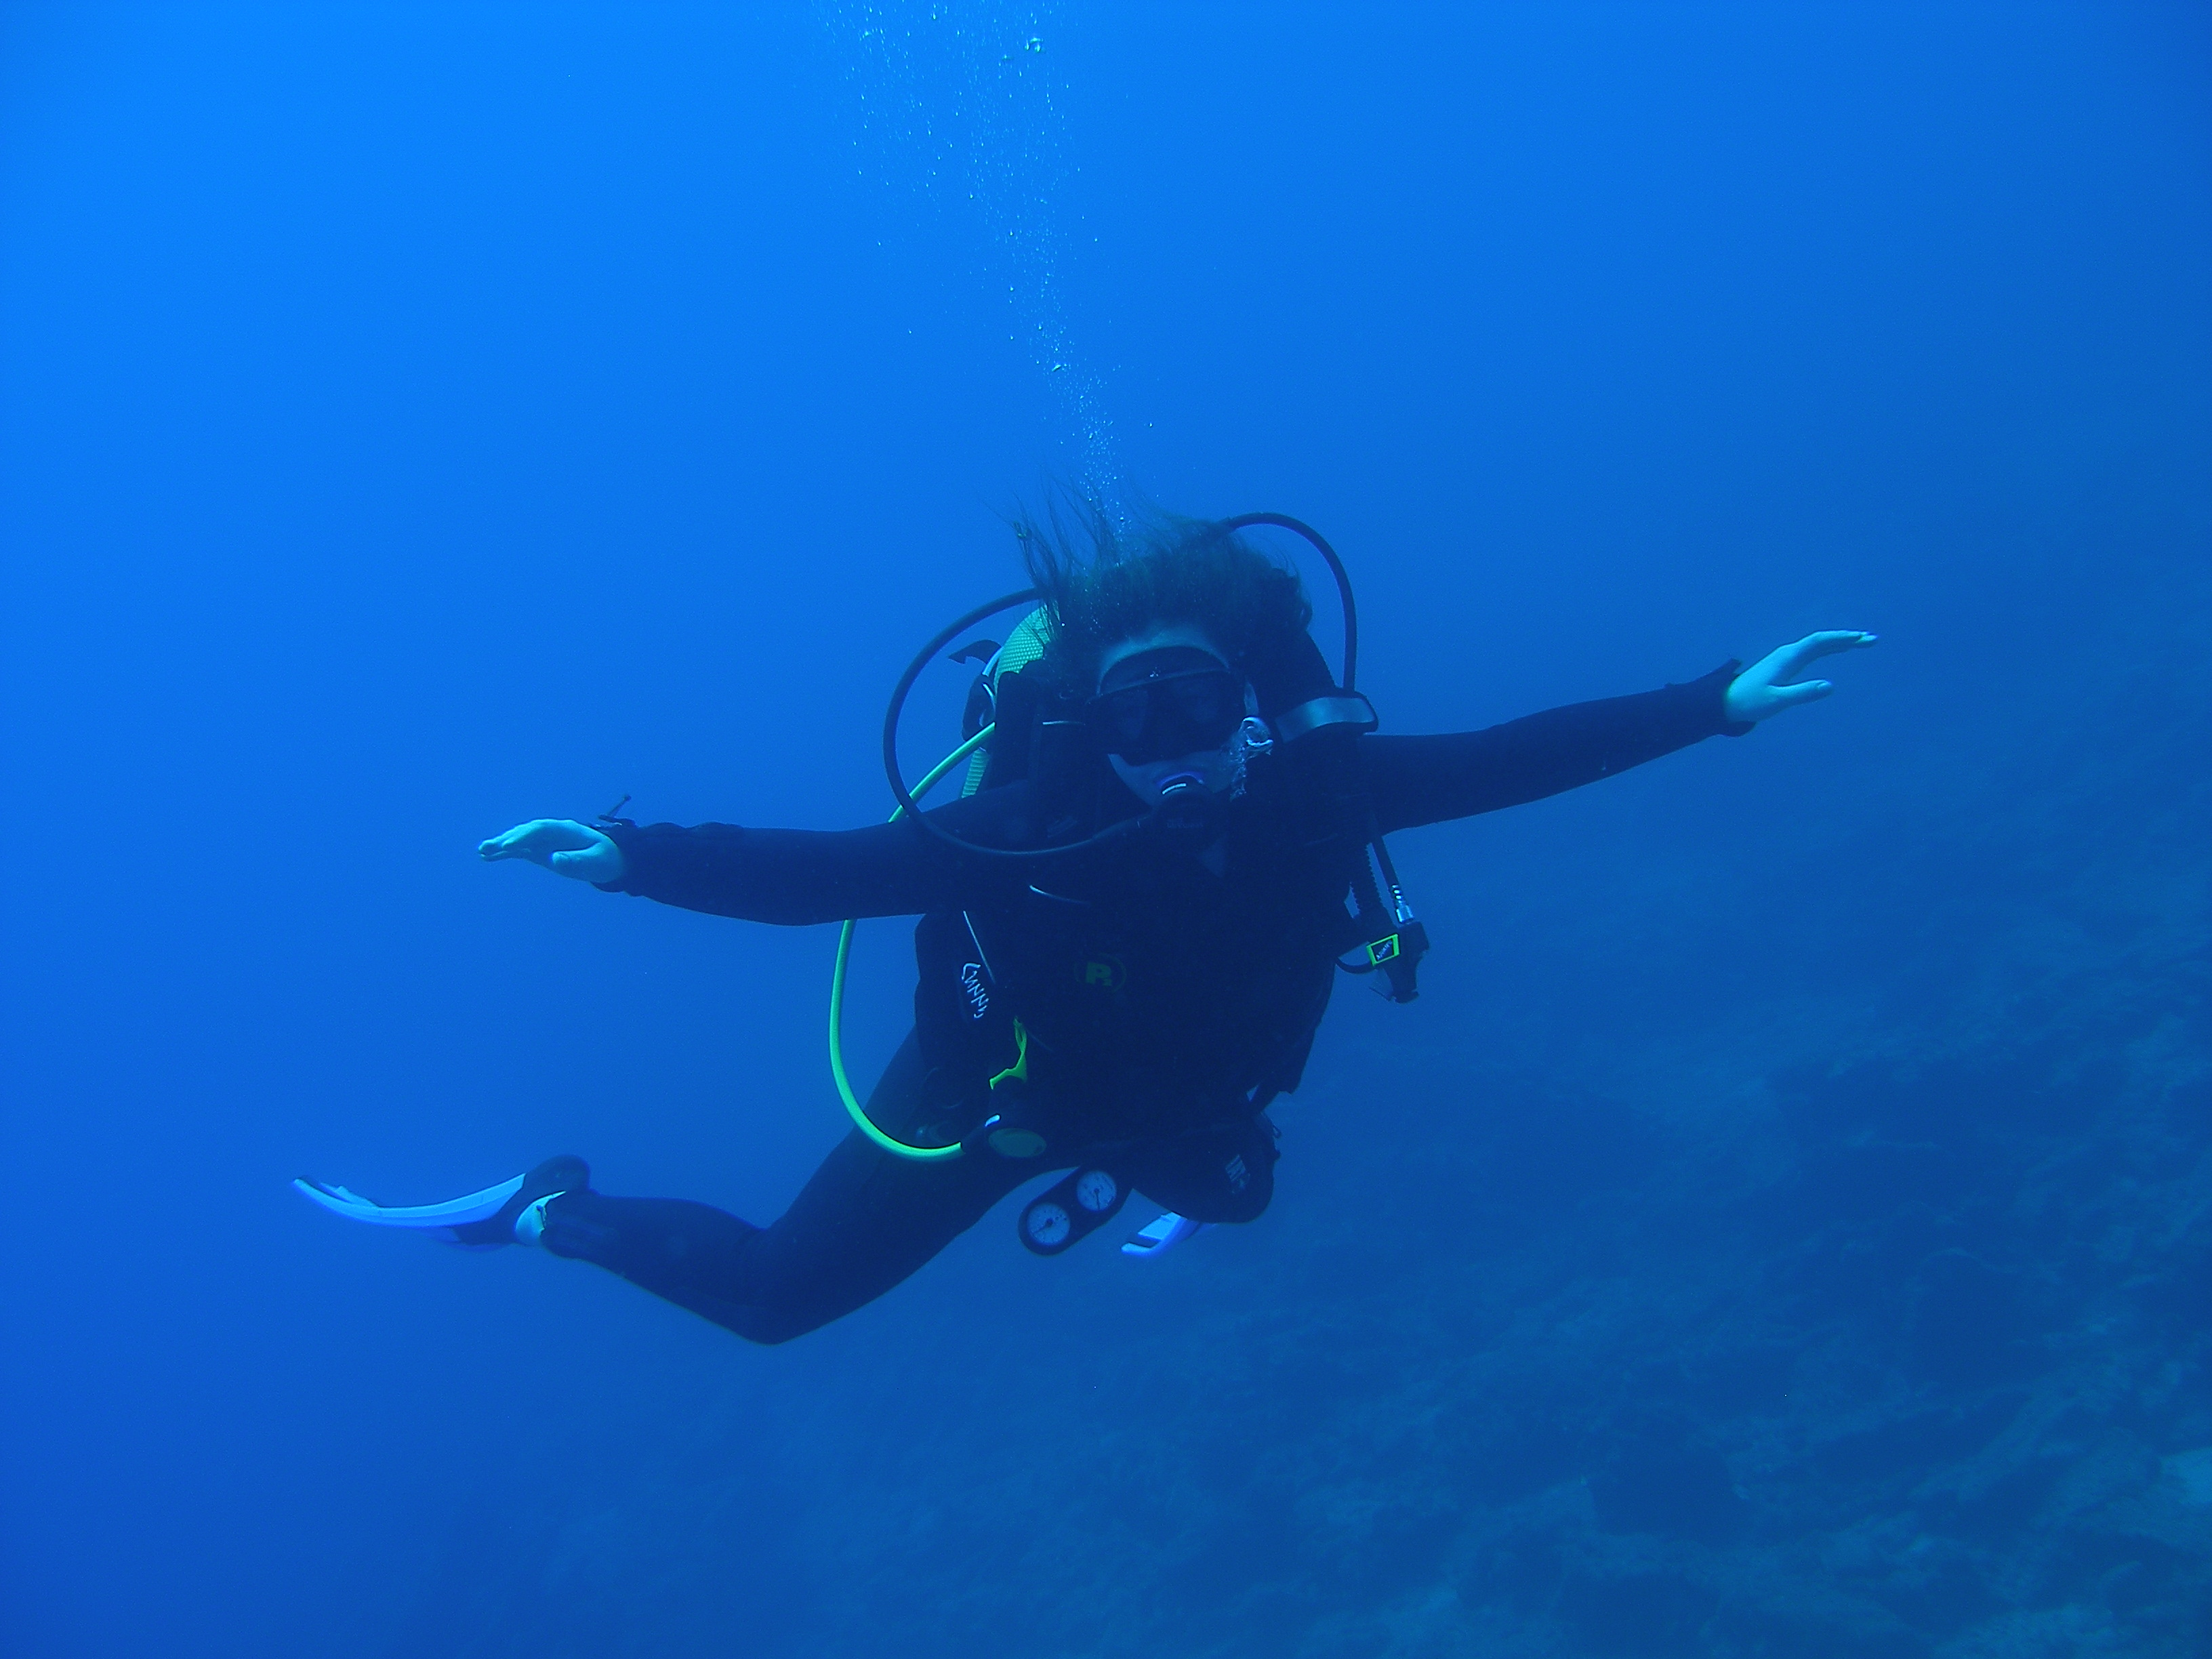 Mariliis Eensalu diving in the Mediterranean Sea.